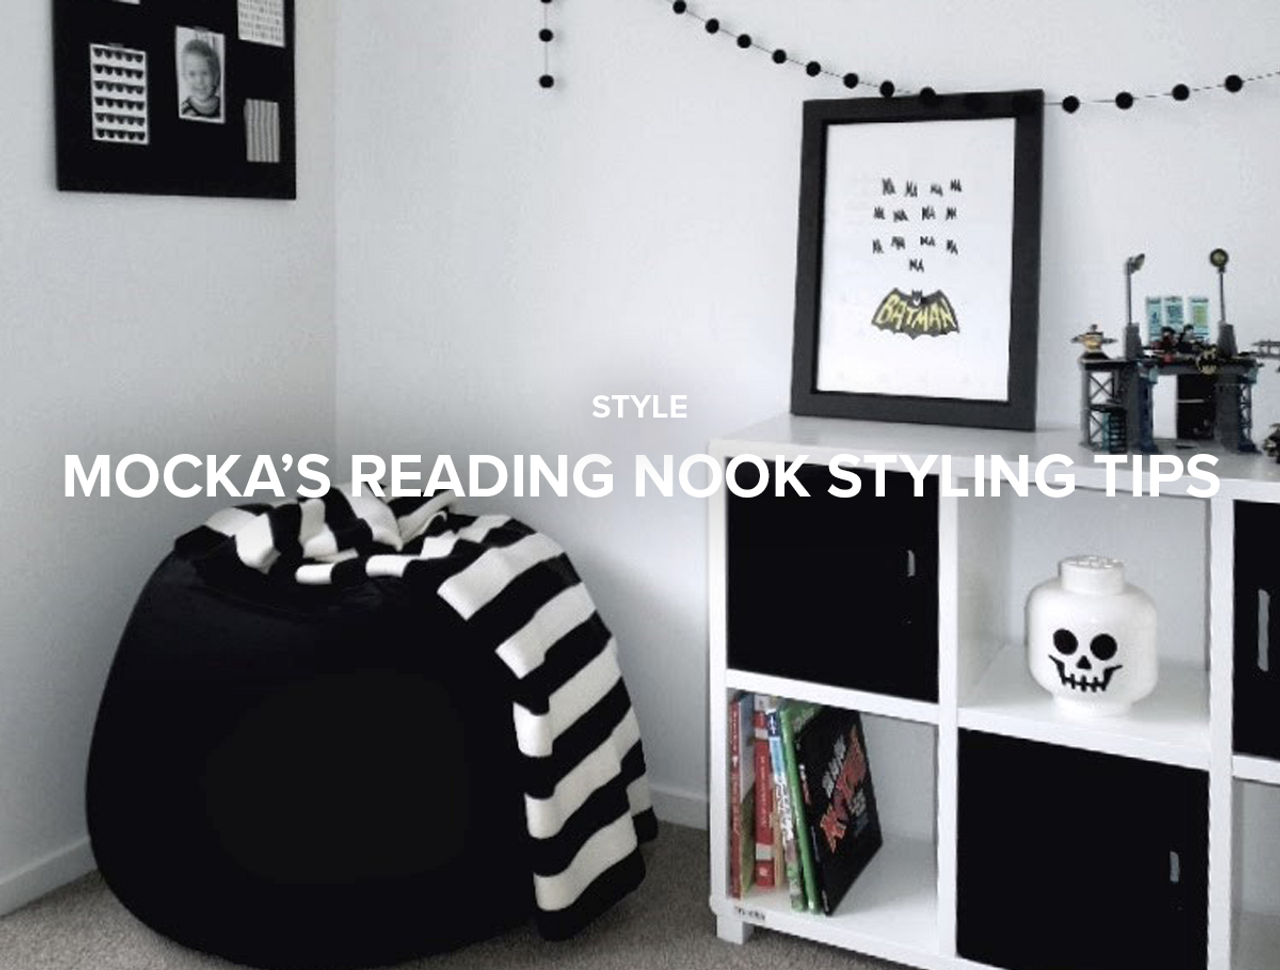 Mocka's Reading Nook Styling Tips